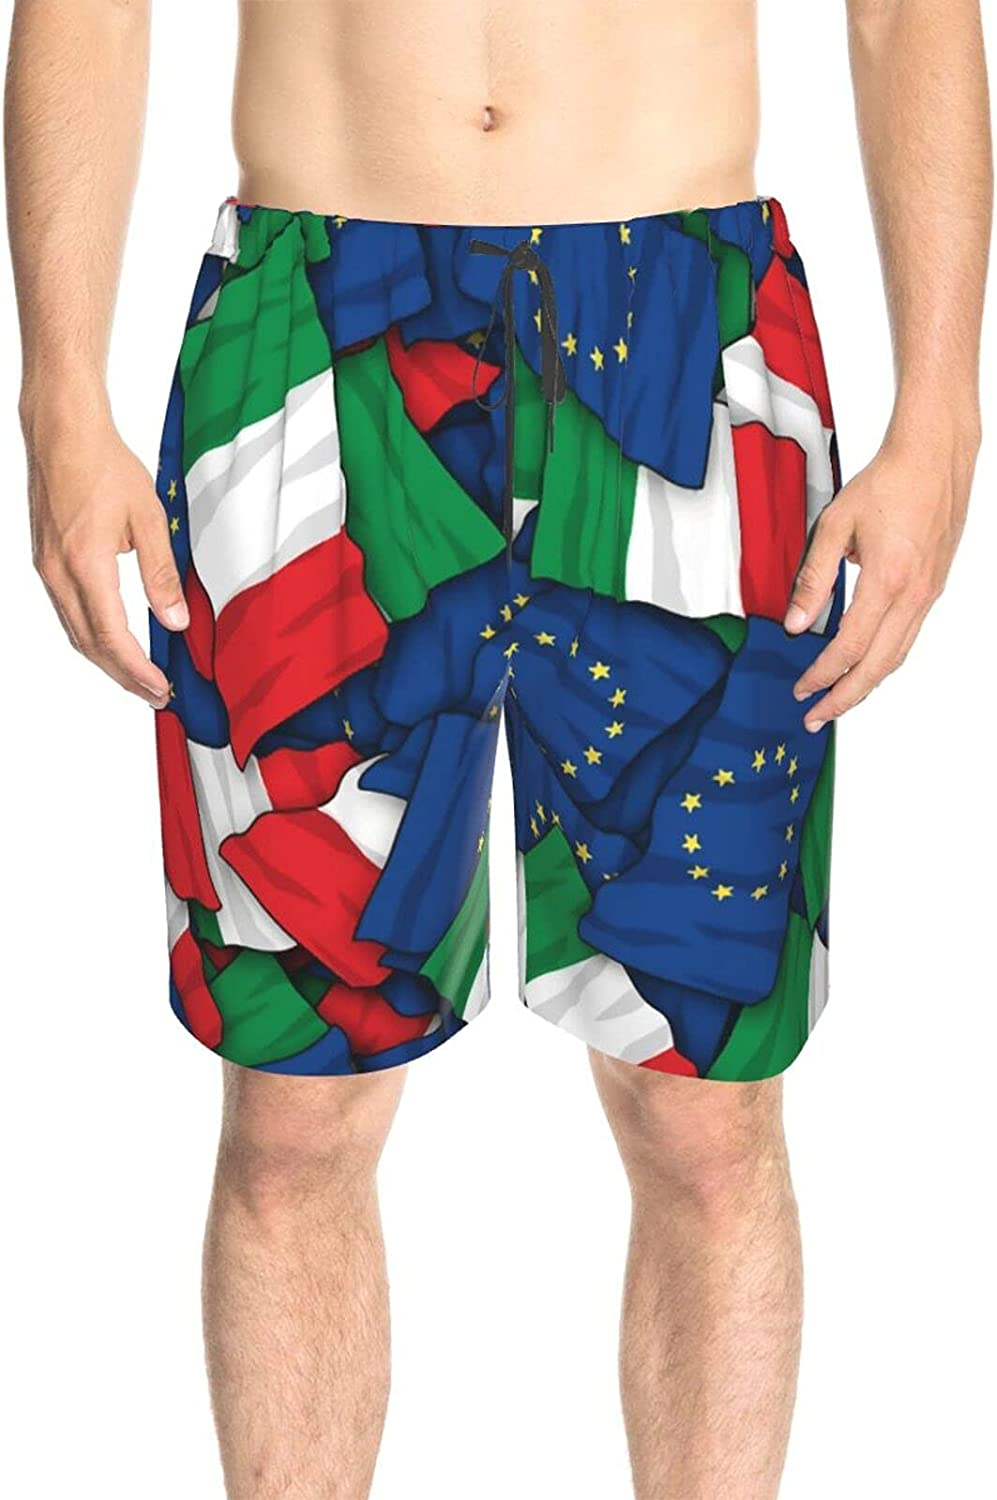 JINJUELS Mens Bathing Suits EU Italy Flag Beachwear Board Shorts Quick Dry Cool Athletic Swimwear Shorts with Mesh Lining